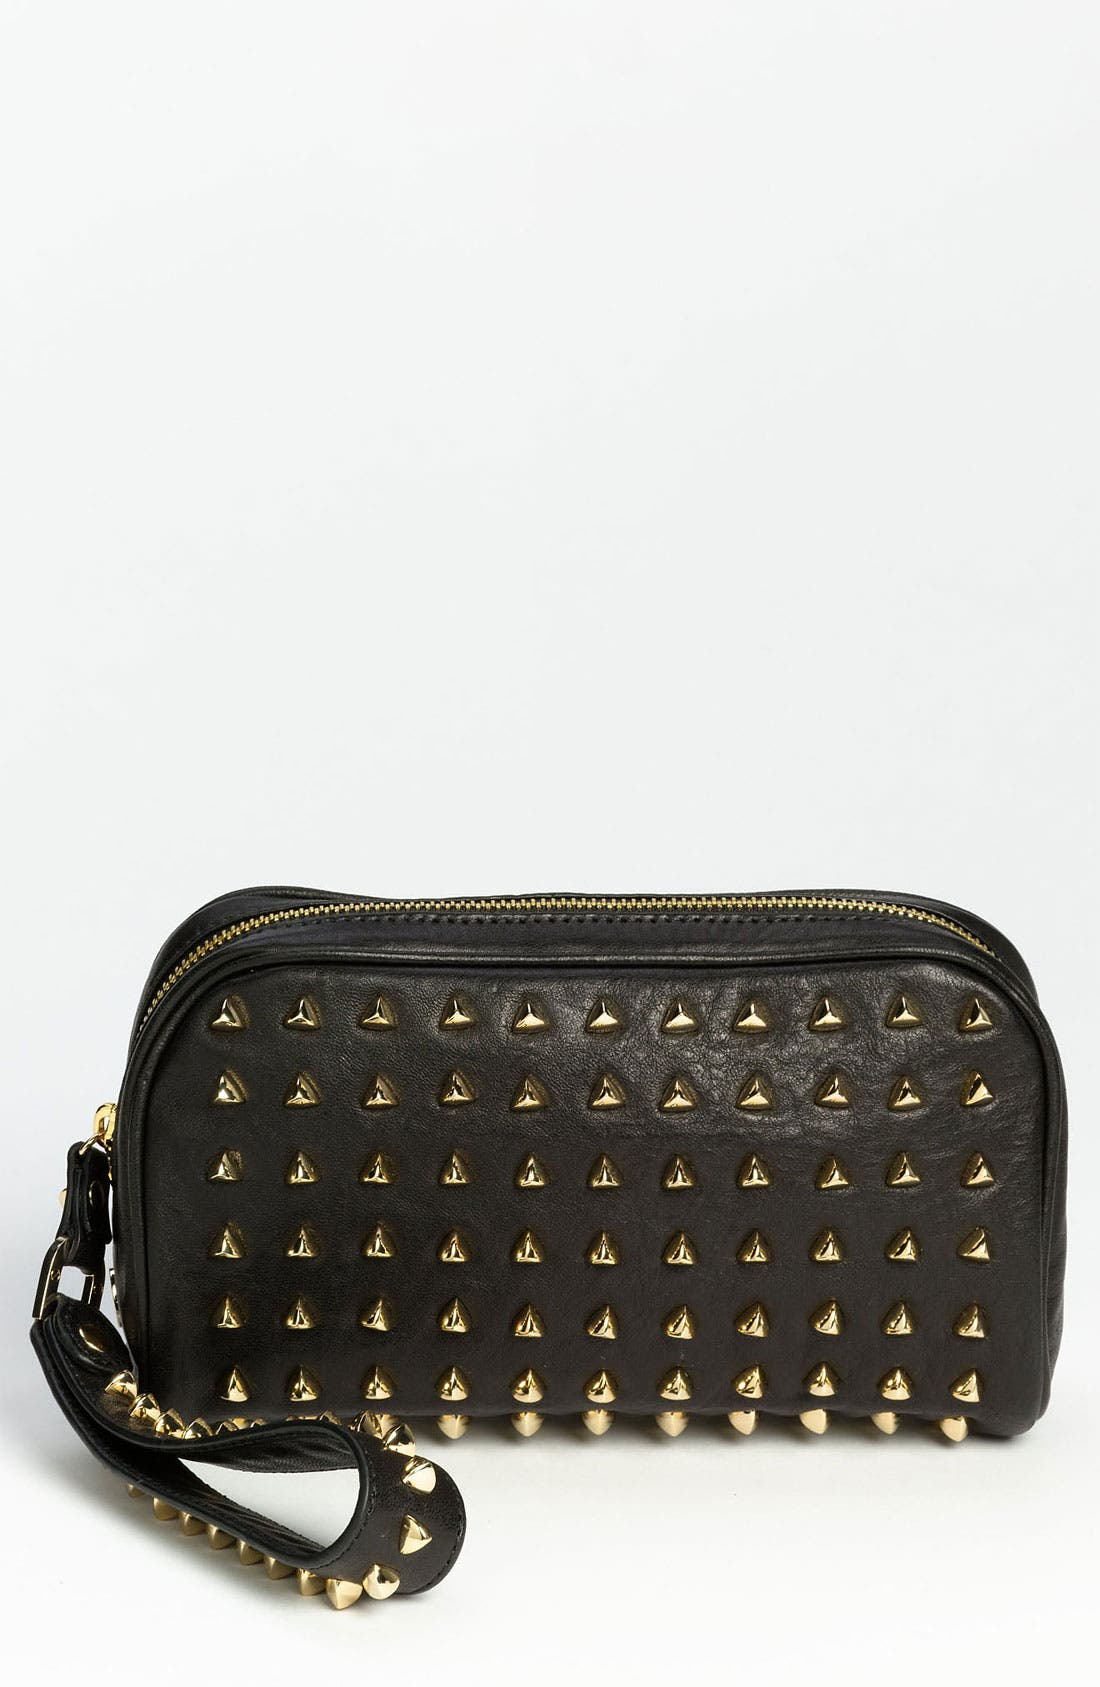 Main Image - Tory Burch Pyramid Stud Clutch